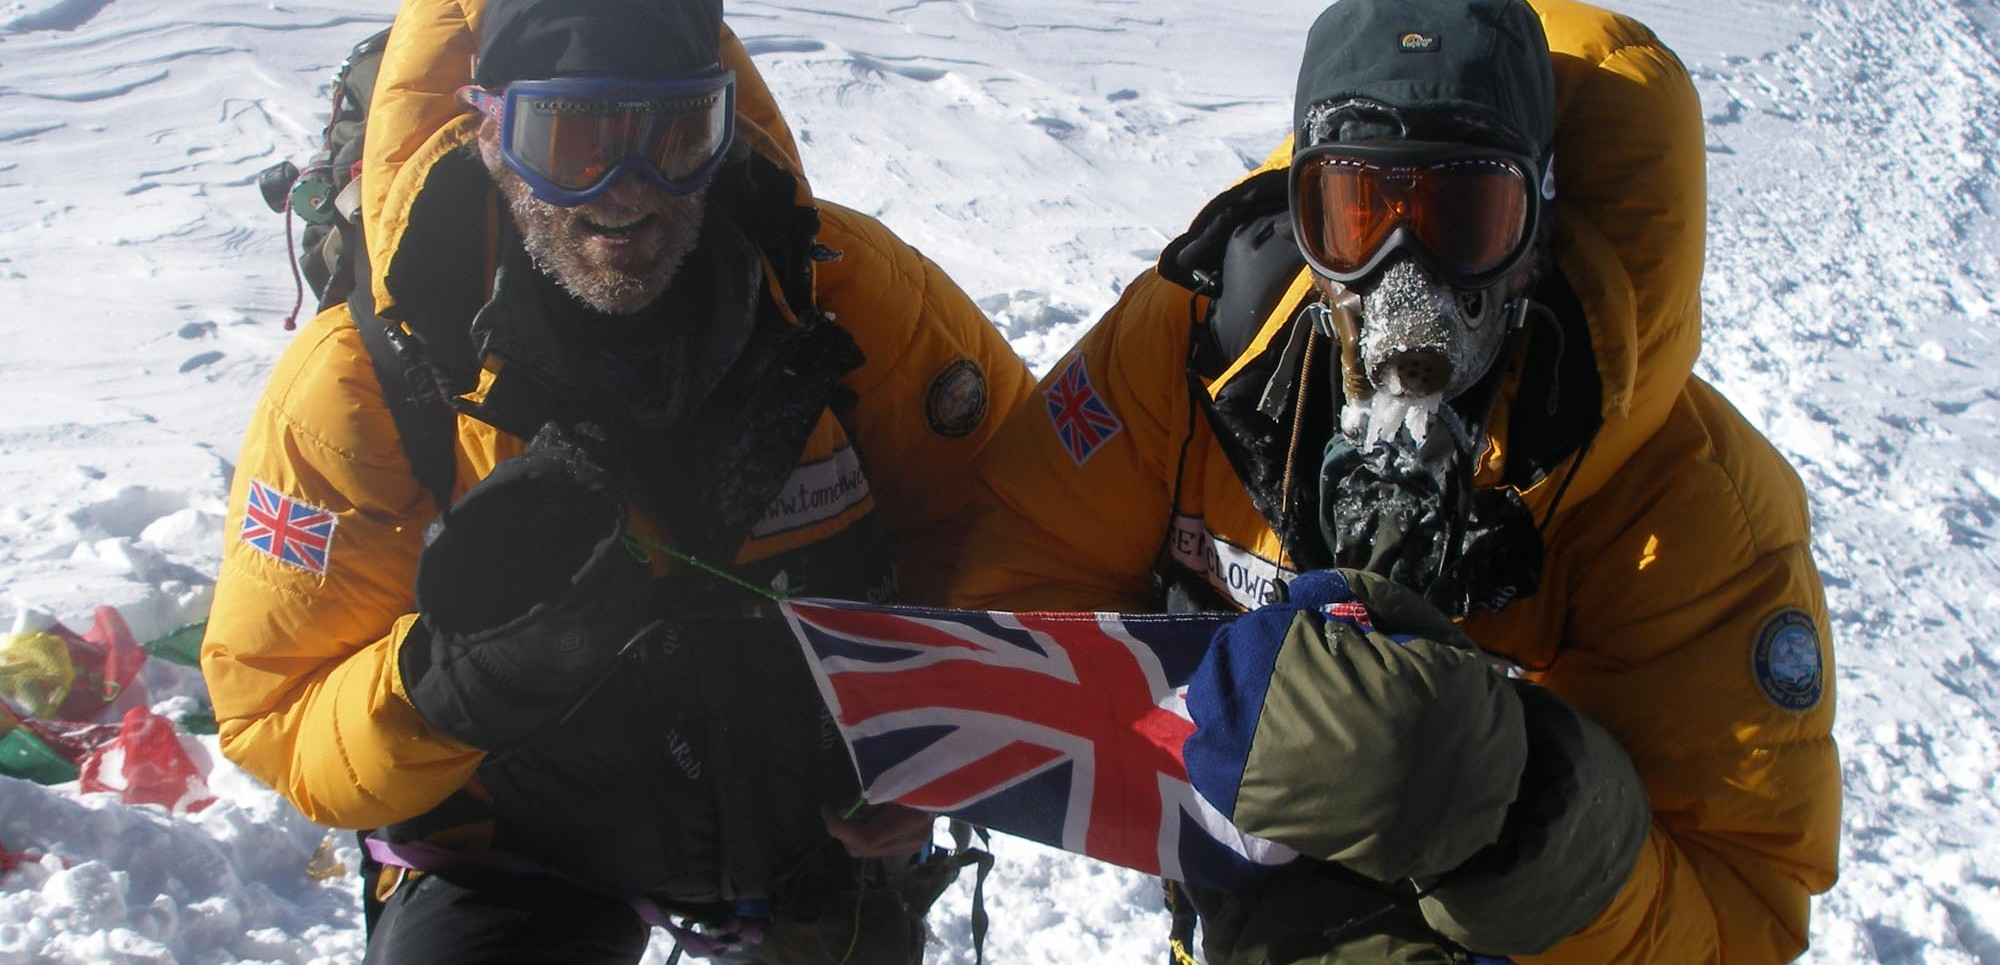 Tom and Ben Clowes on the top of Everest (18th May, 2006)